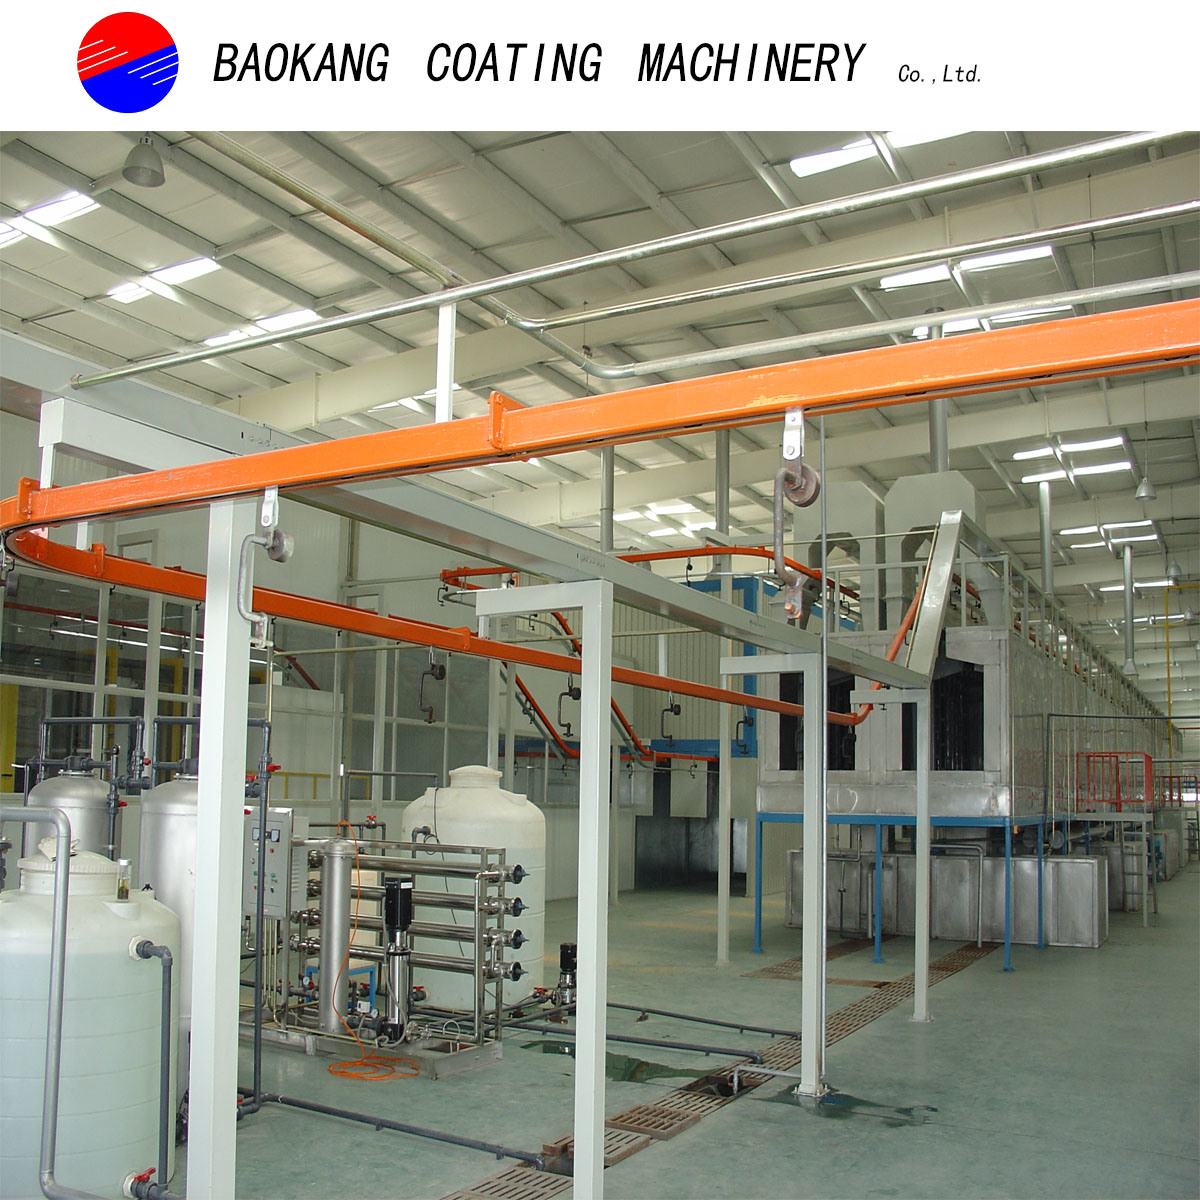 Automatic Powder Coating Line with PT (pre-treatment clean system) System